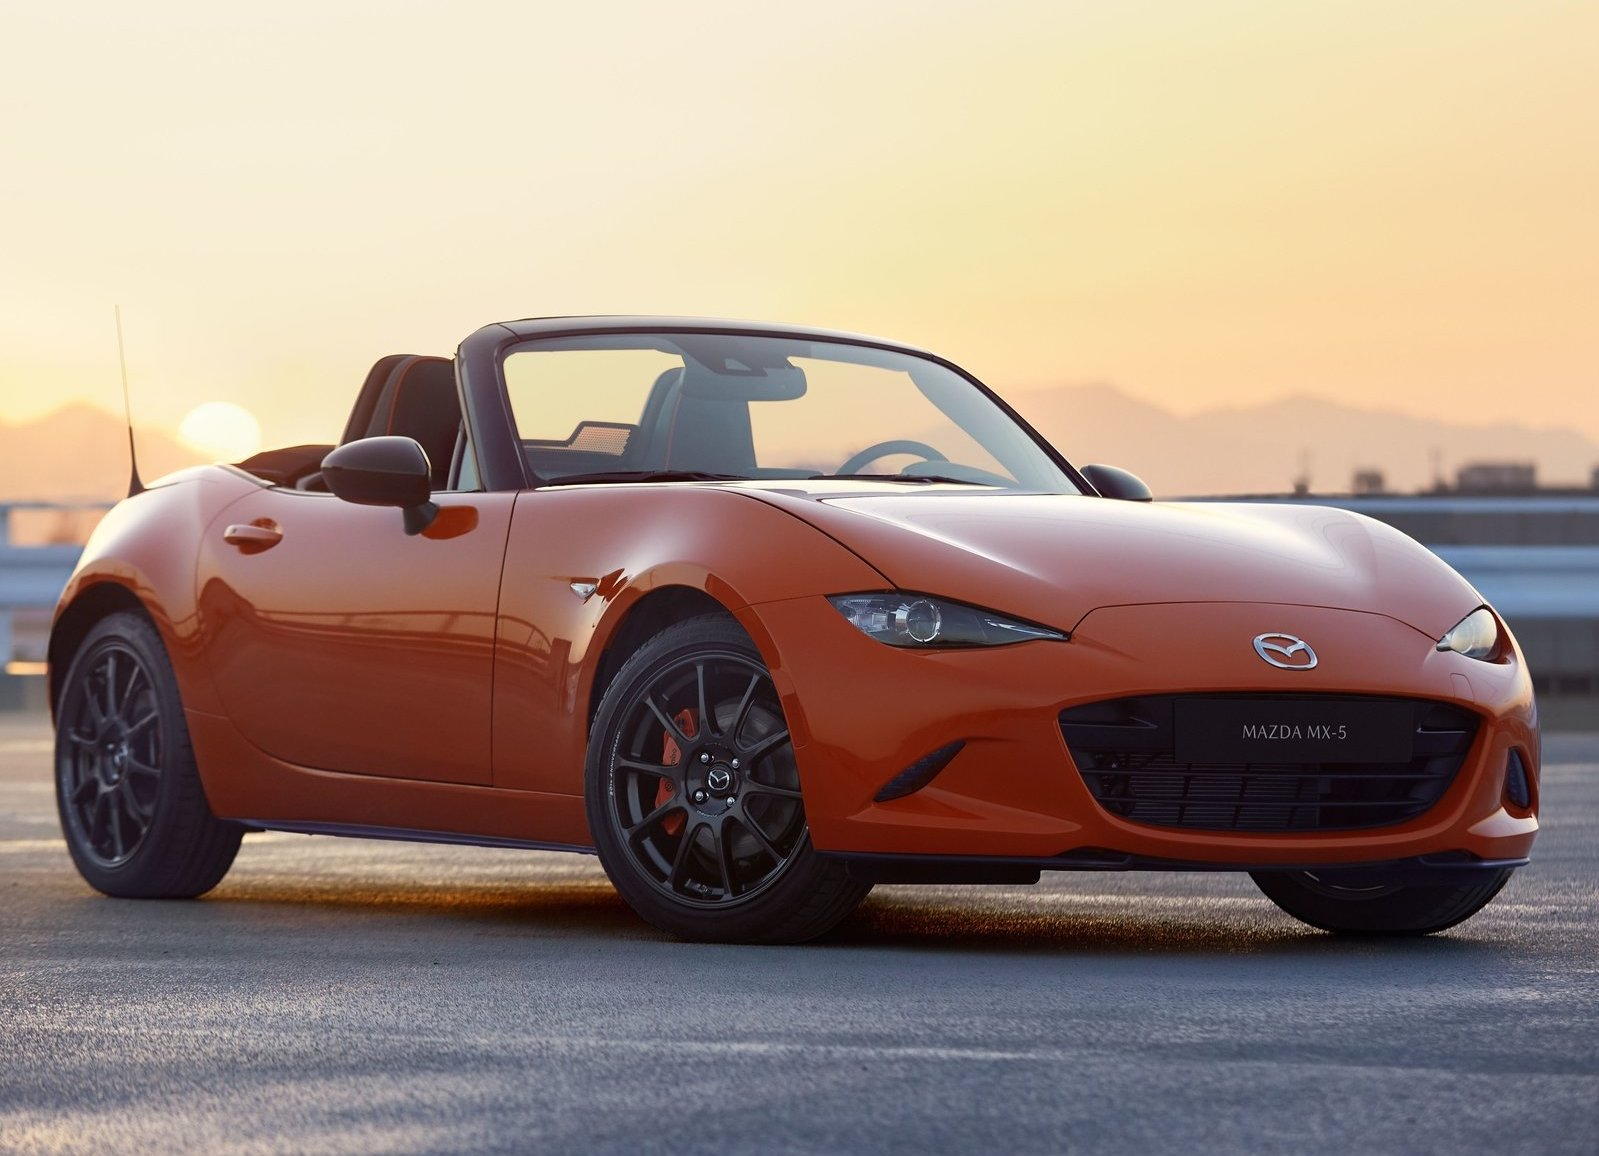 2019 Mazda MX-5 Miata 30th Anniversary Edition 3/4 front